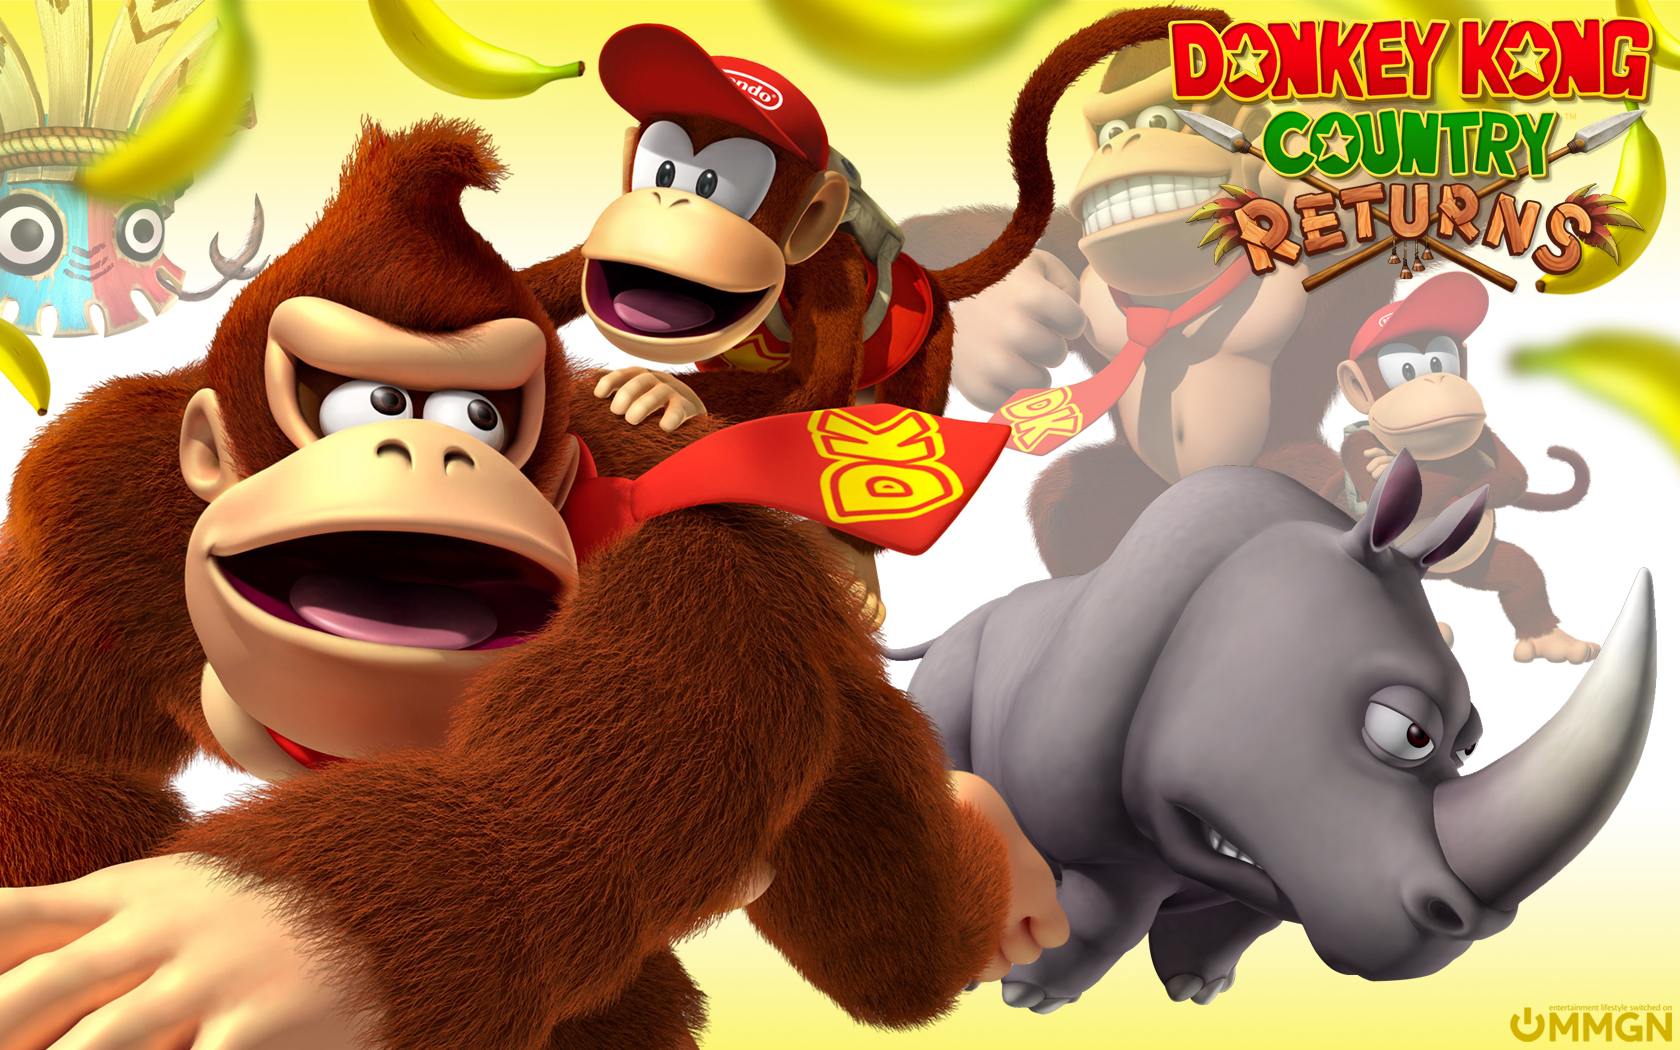 3d Wallpaper For Desktop Icon Donkey Kong Mobile Phone Wallpapers And Desktop